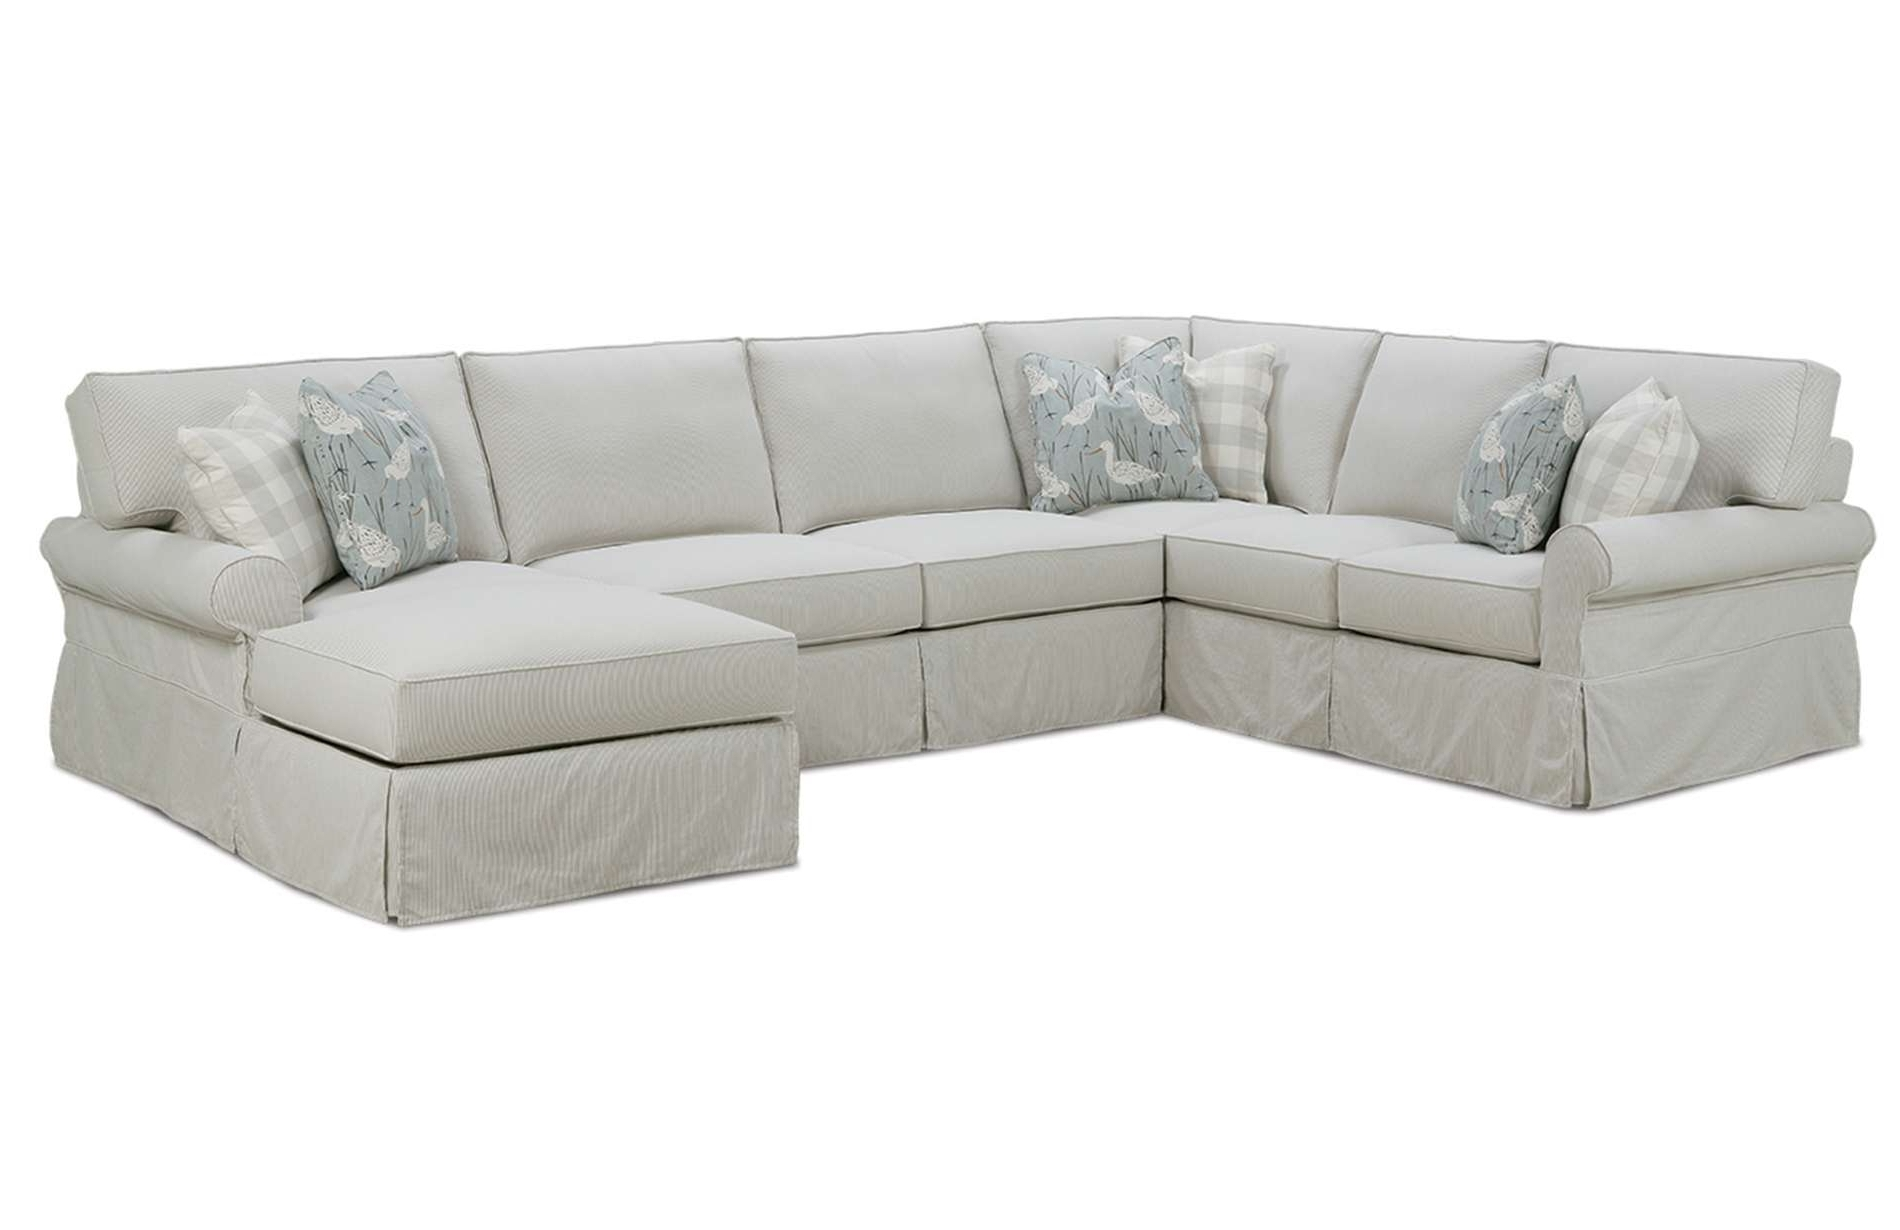 Fashionable Sectional Sofas At Chicago In Picture 8 Of 34 – Sectional Sofas Chicago Lovely Custom Sofa (View 18 of 20)